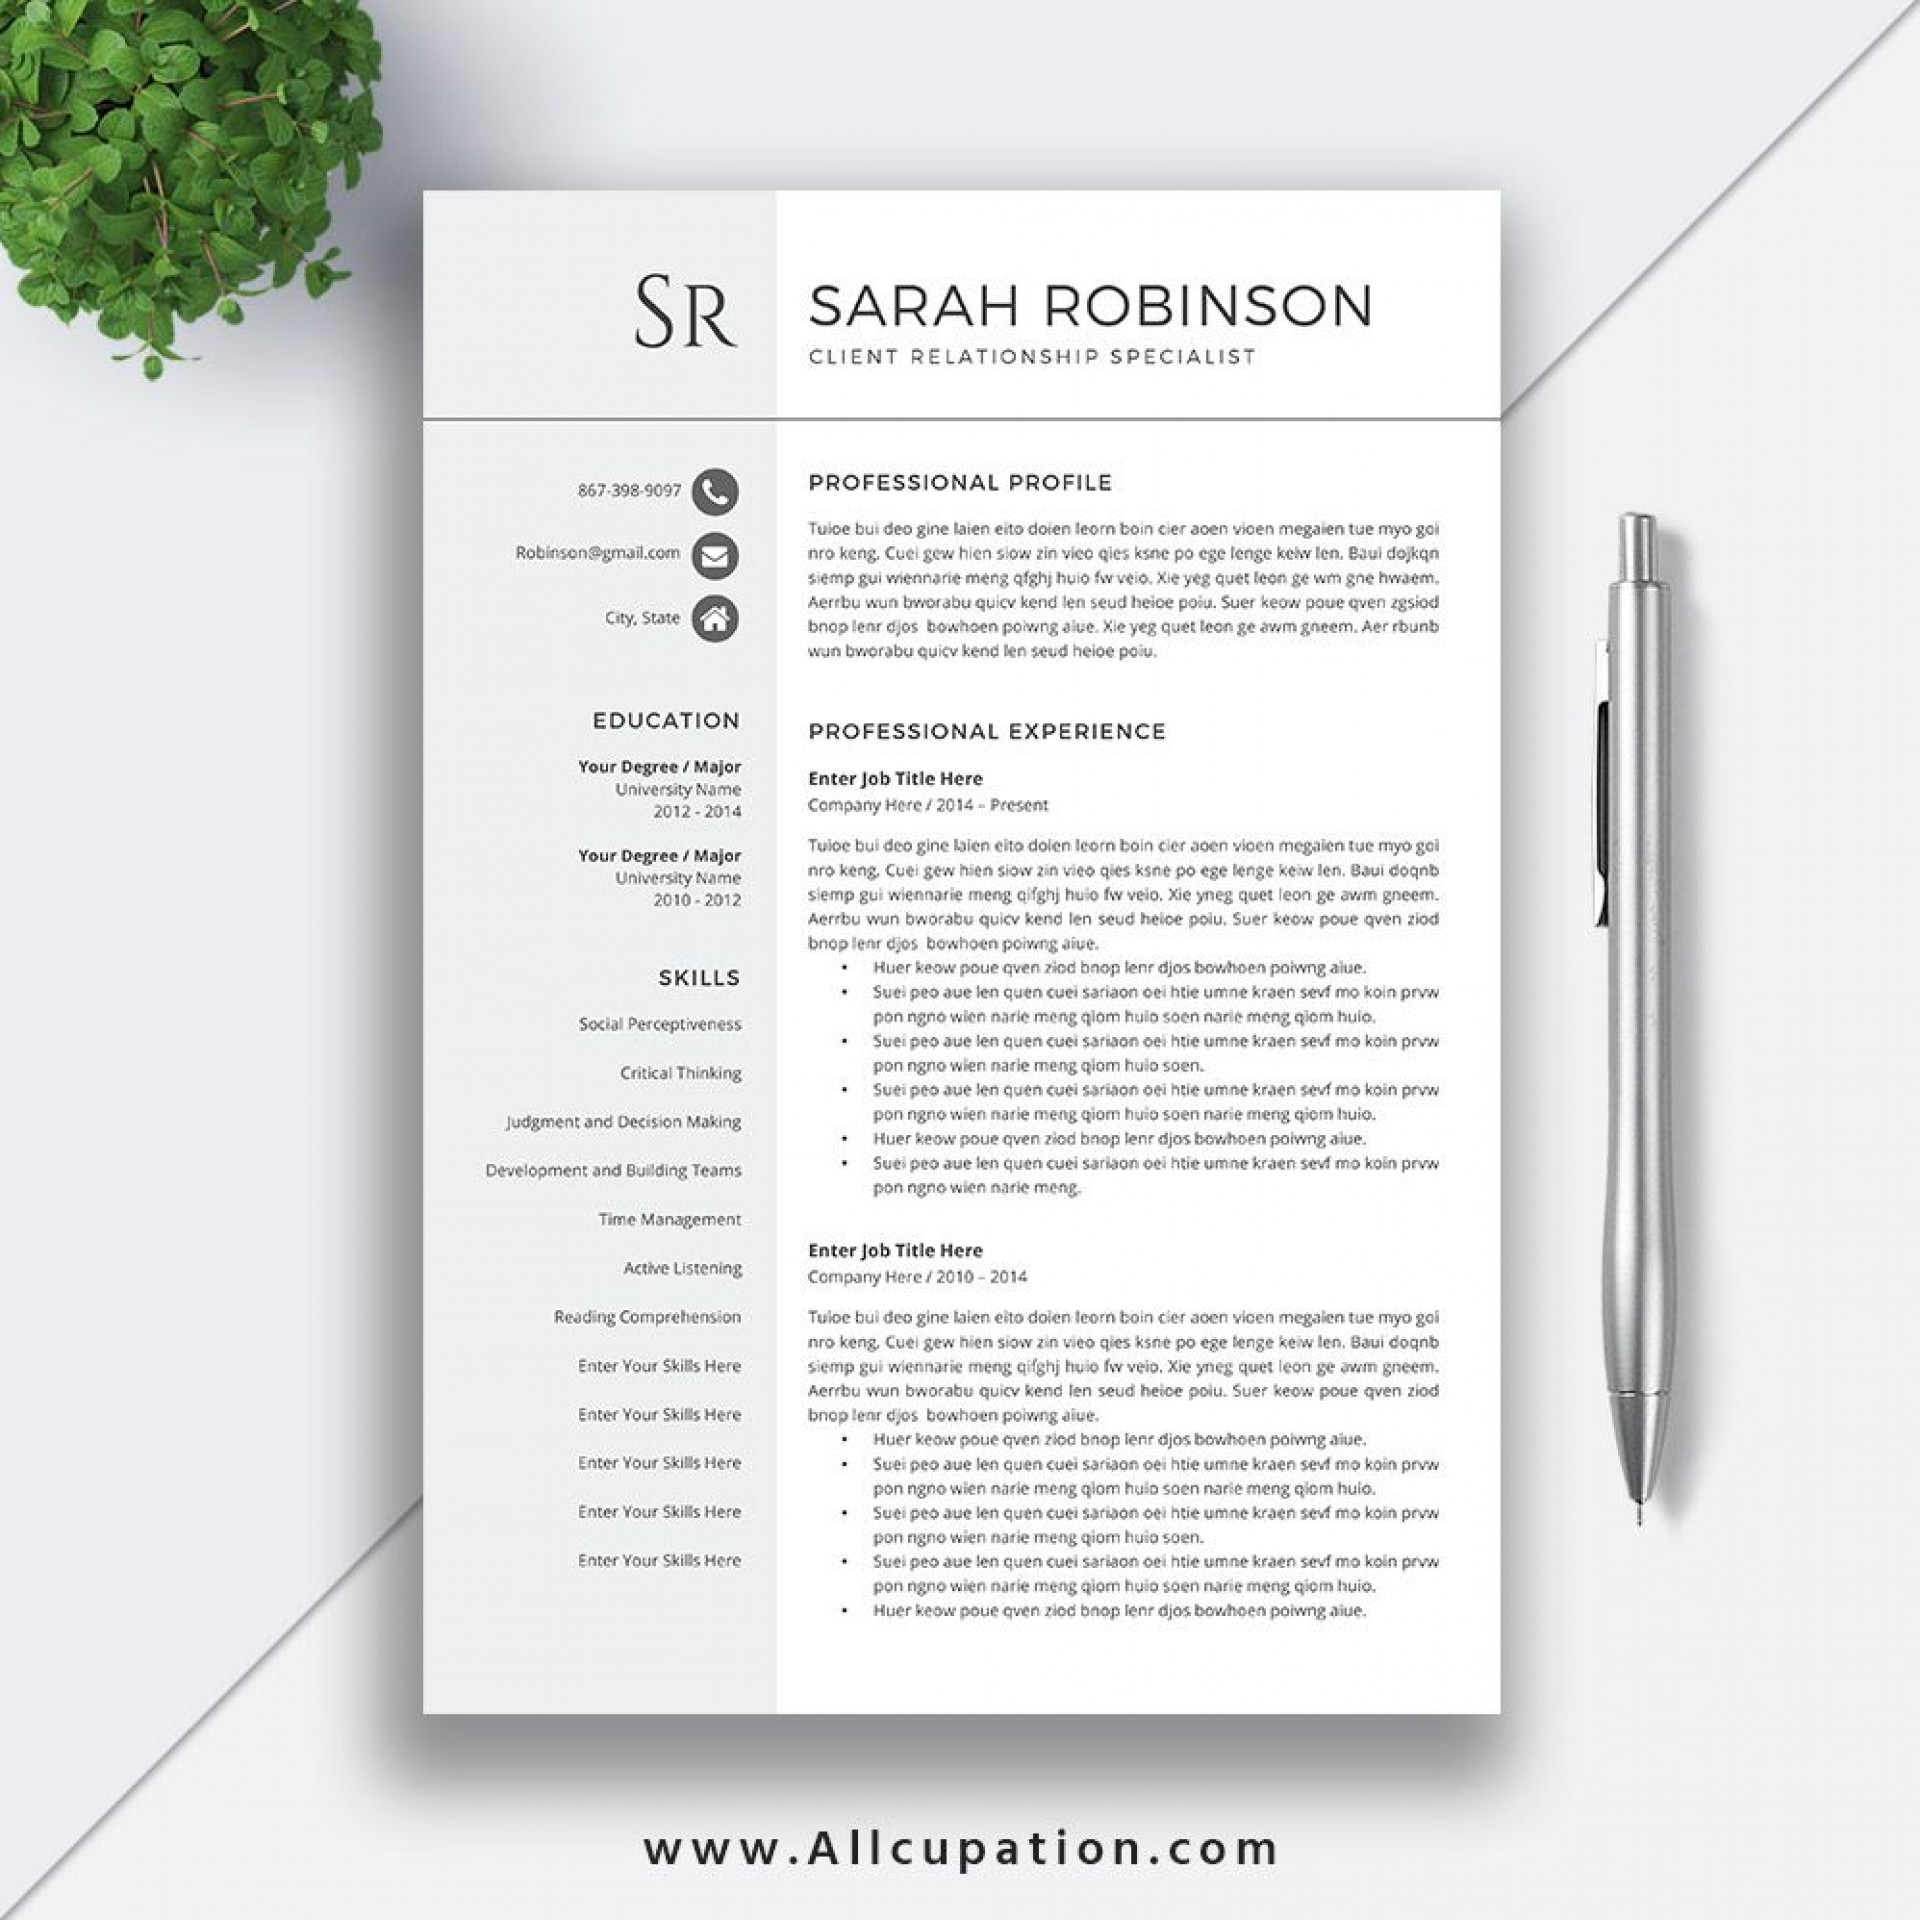 009 Fascinating Student Resume Template Word Photo  High School Free College Microsoft Download1920